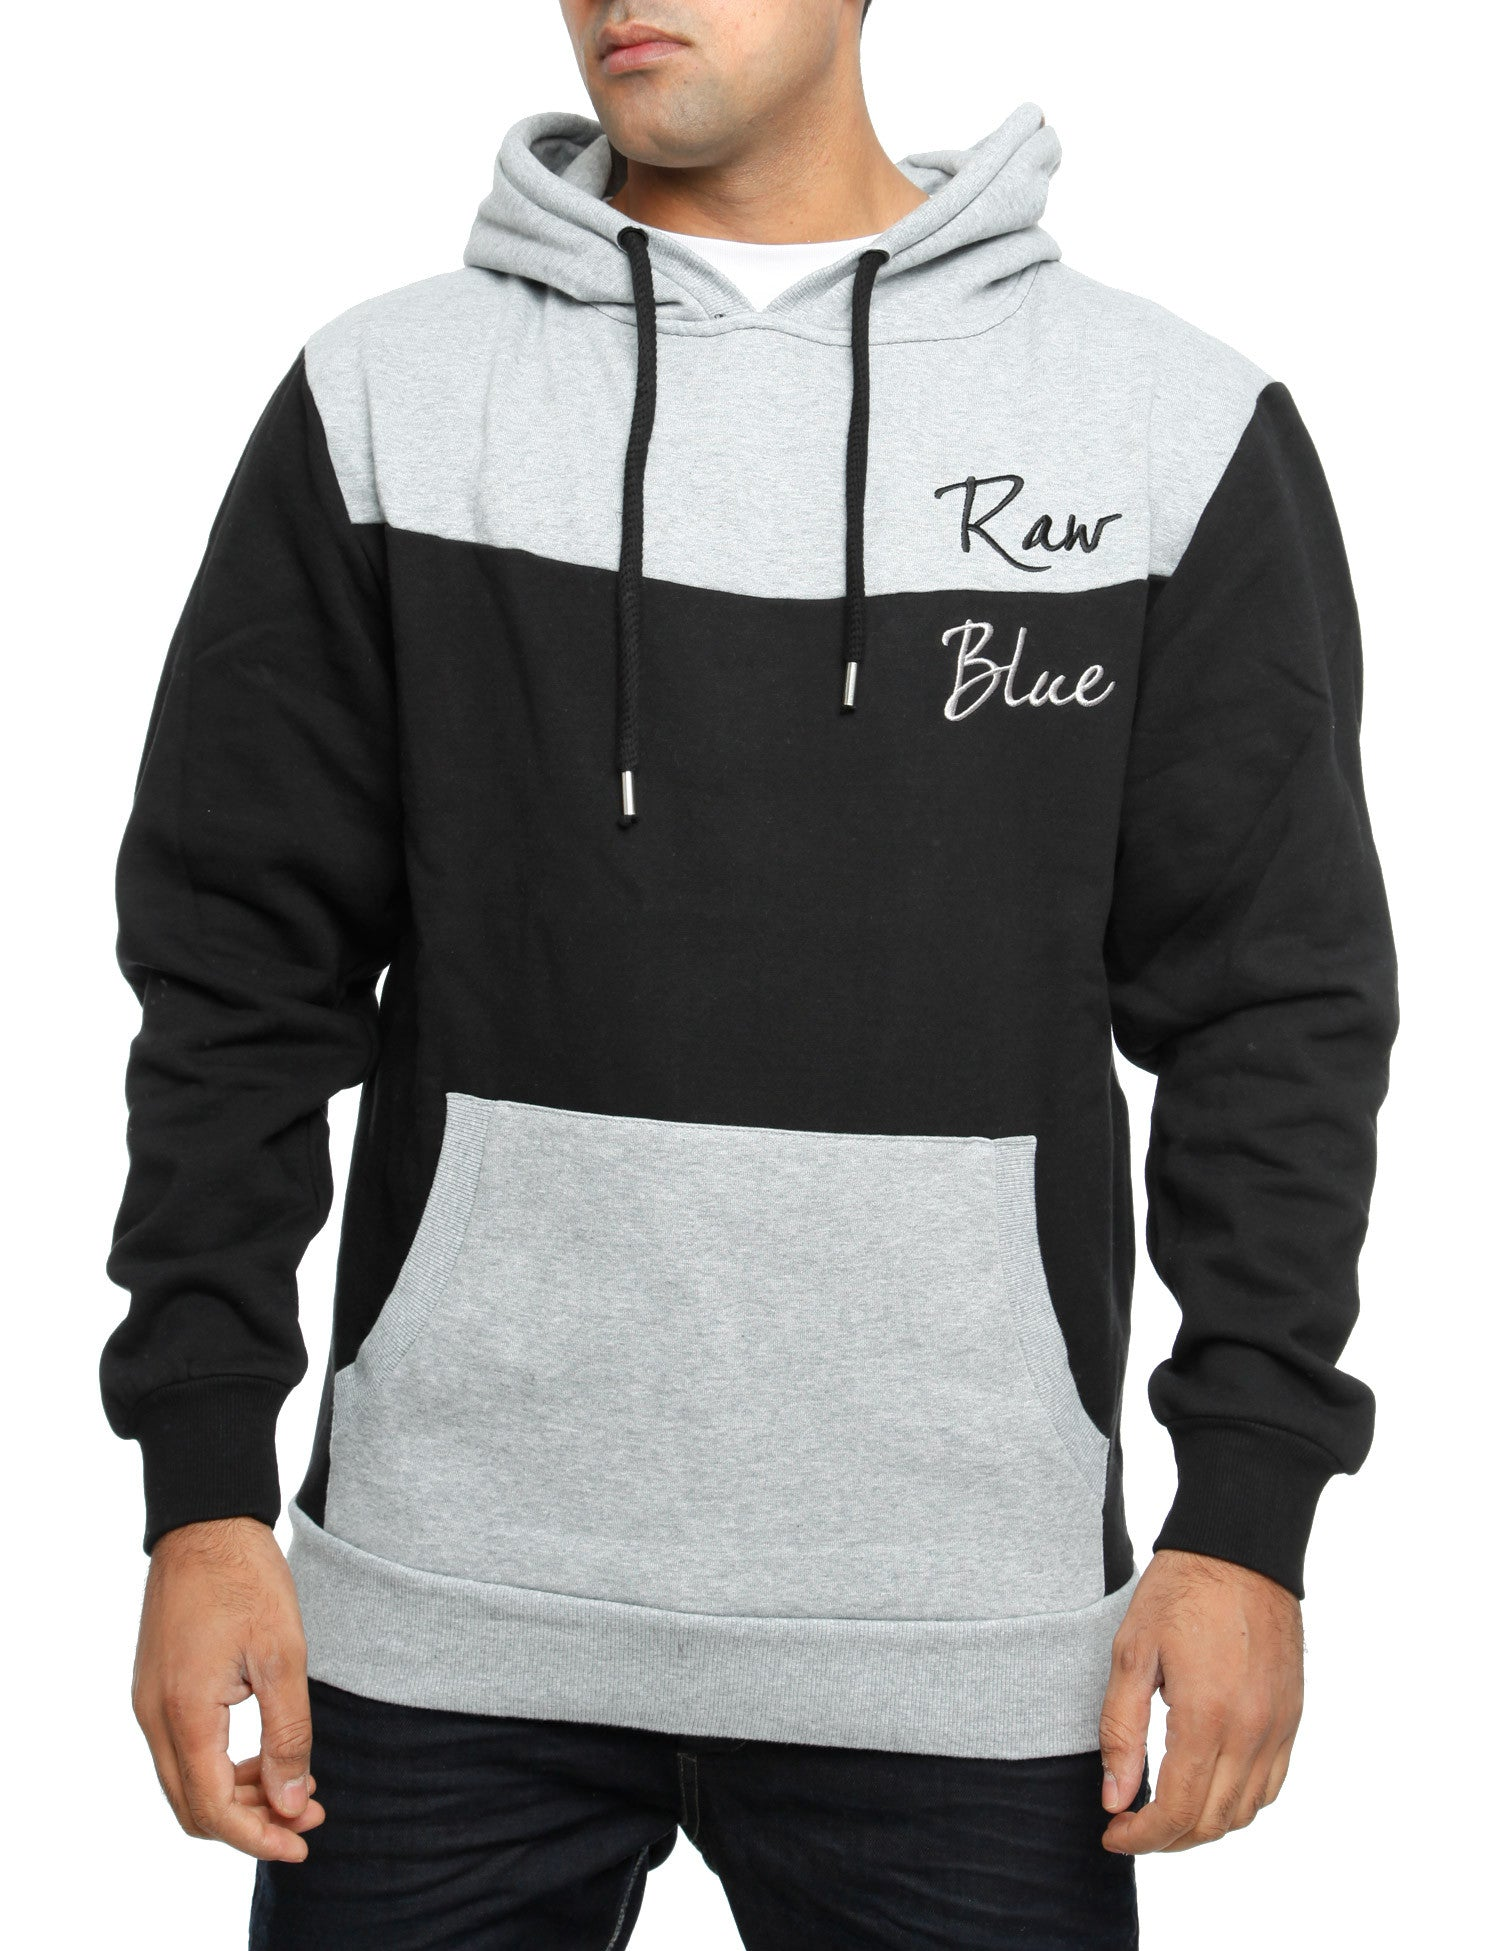 Raw Blue Hoody RBBH2001  Black